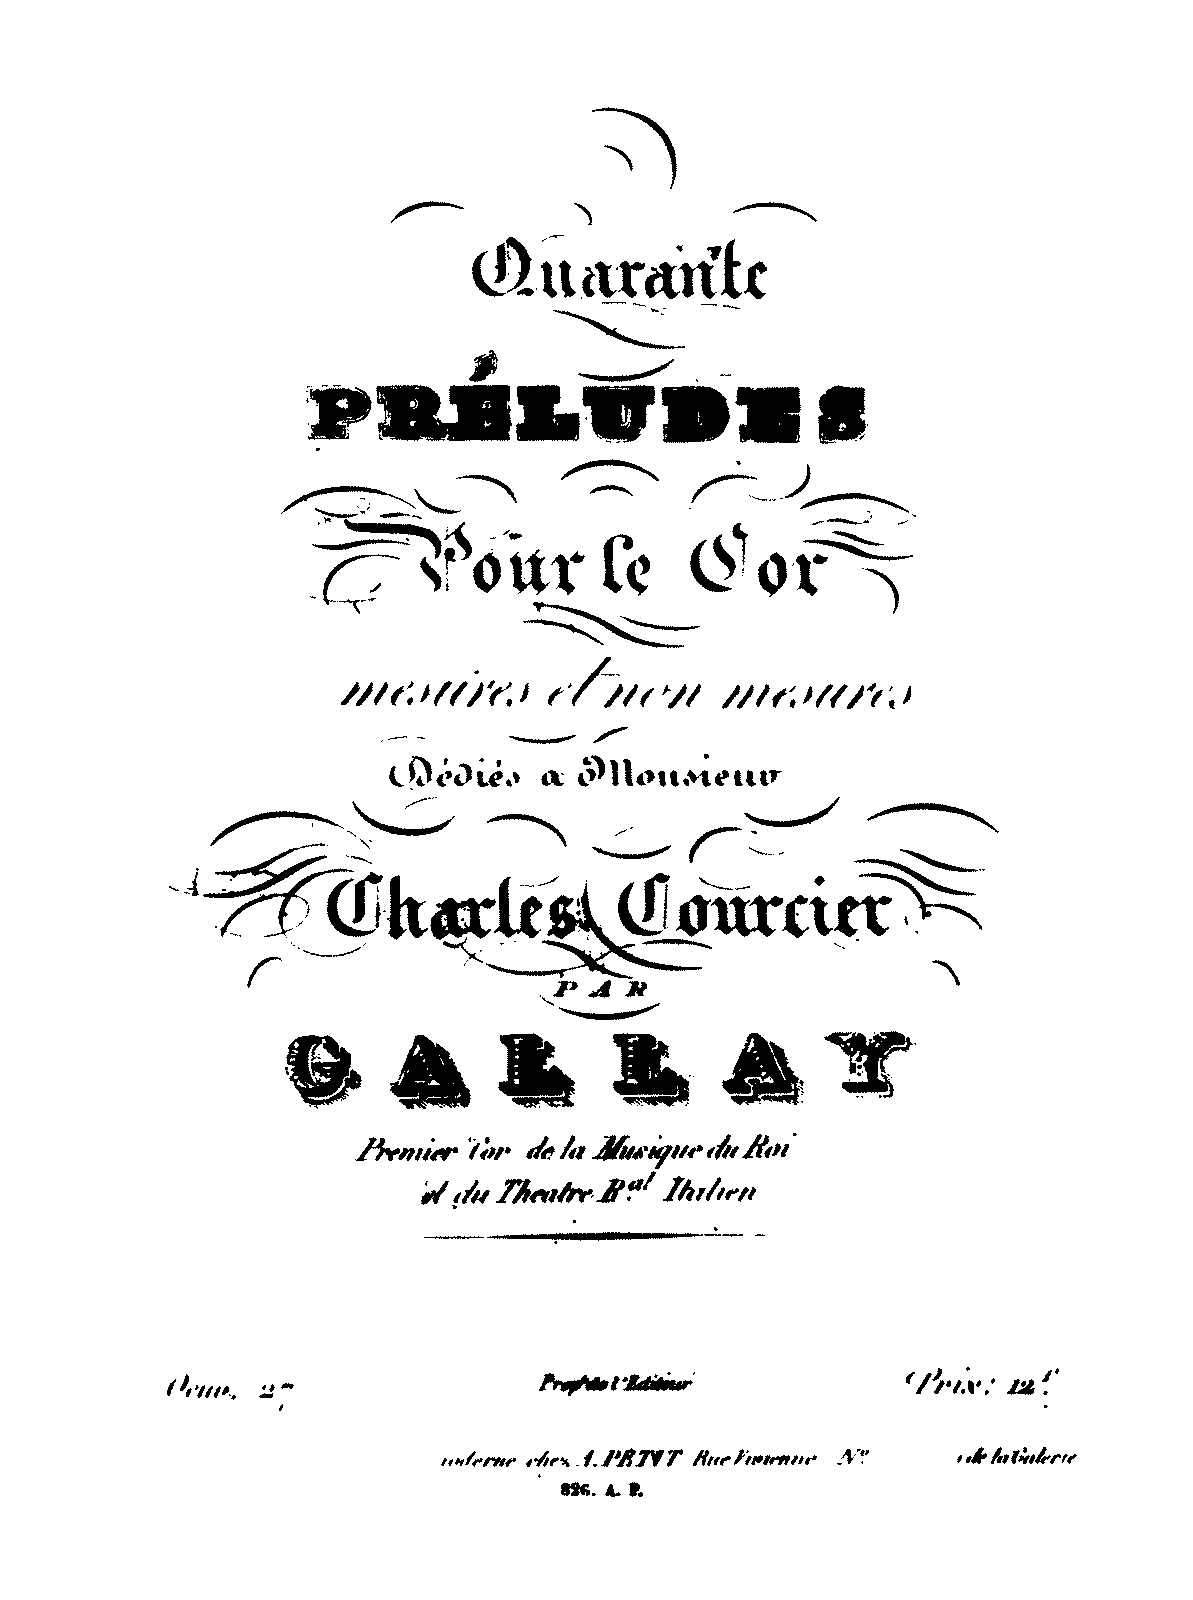 40 Preludes for Horn, Op.27 (Gallay, Jacques François